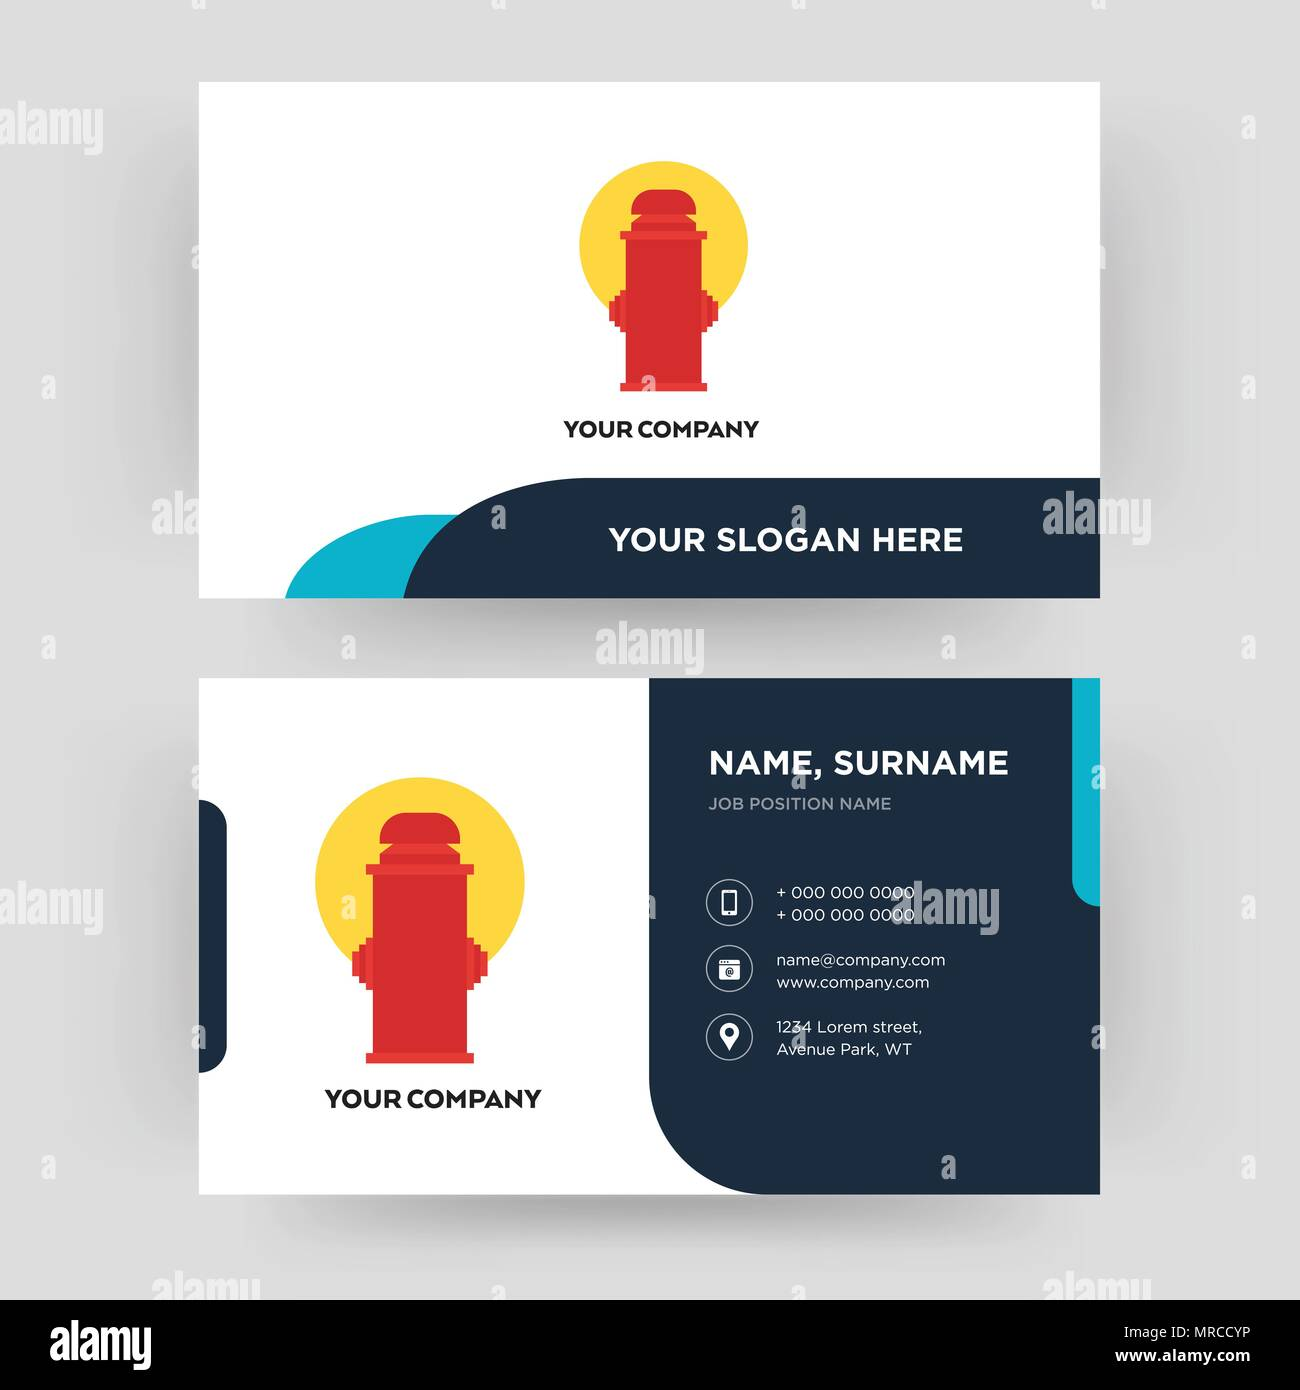 fire hydrant business card design template visiting for your